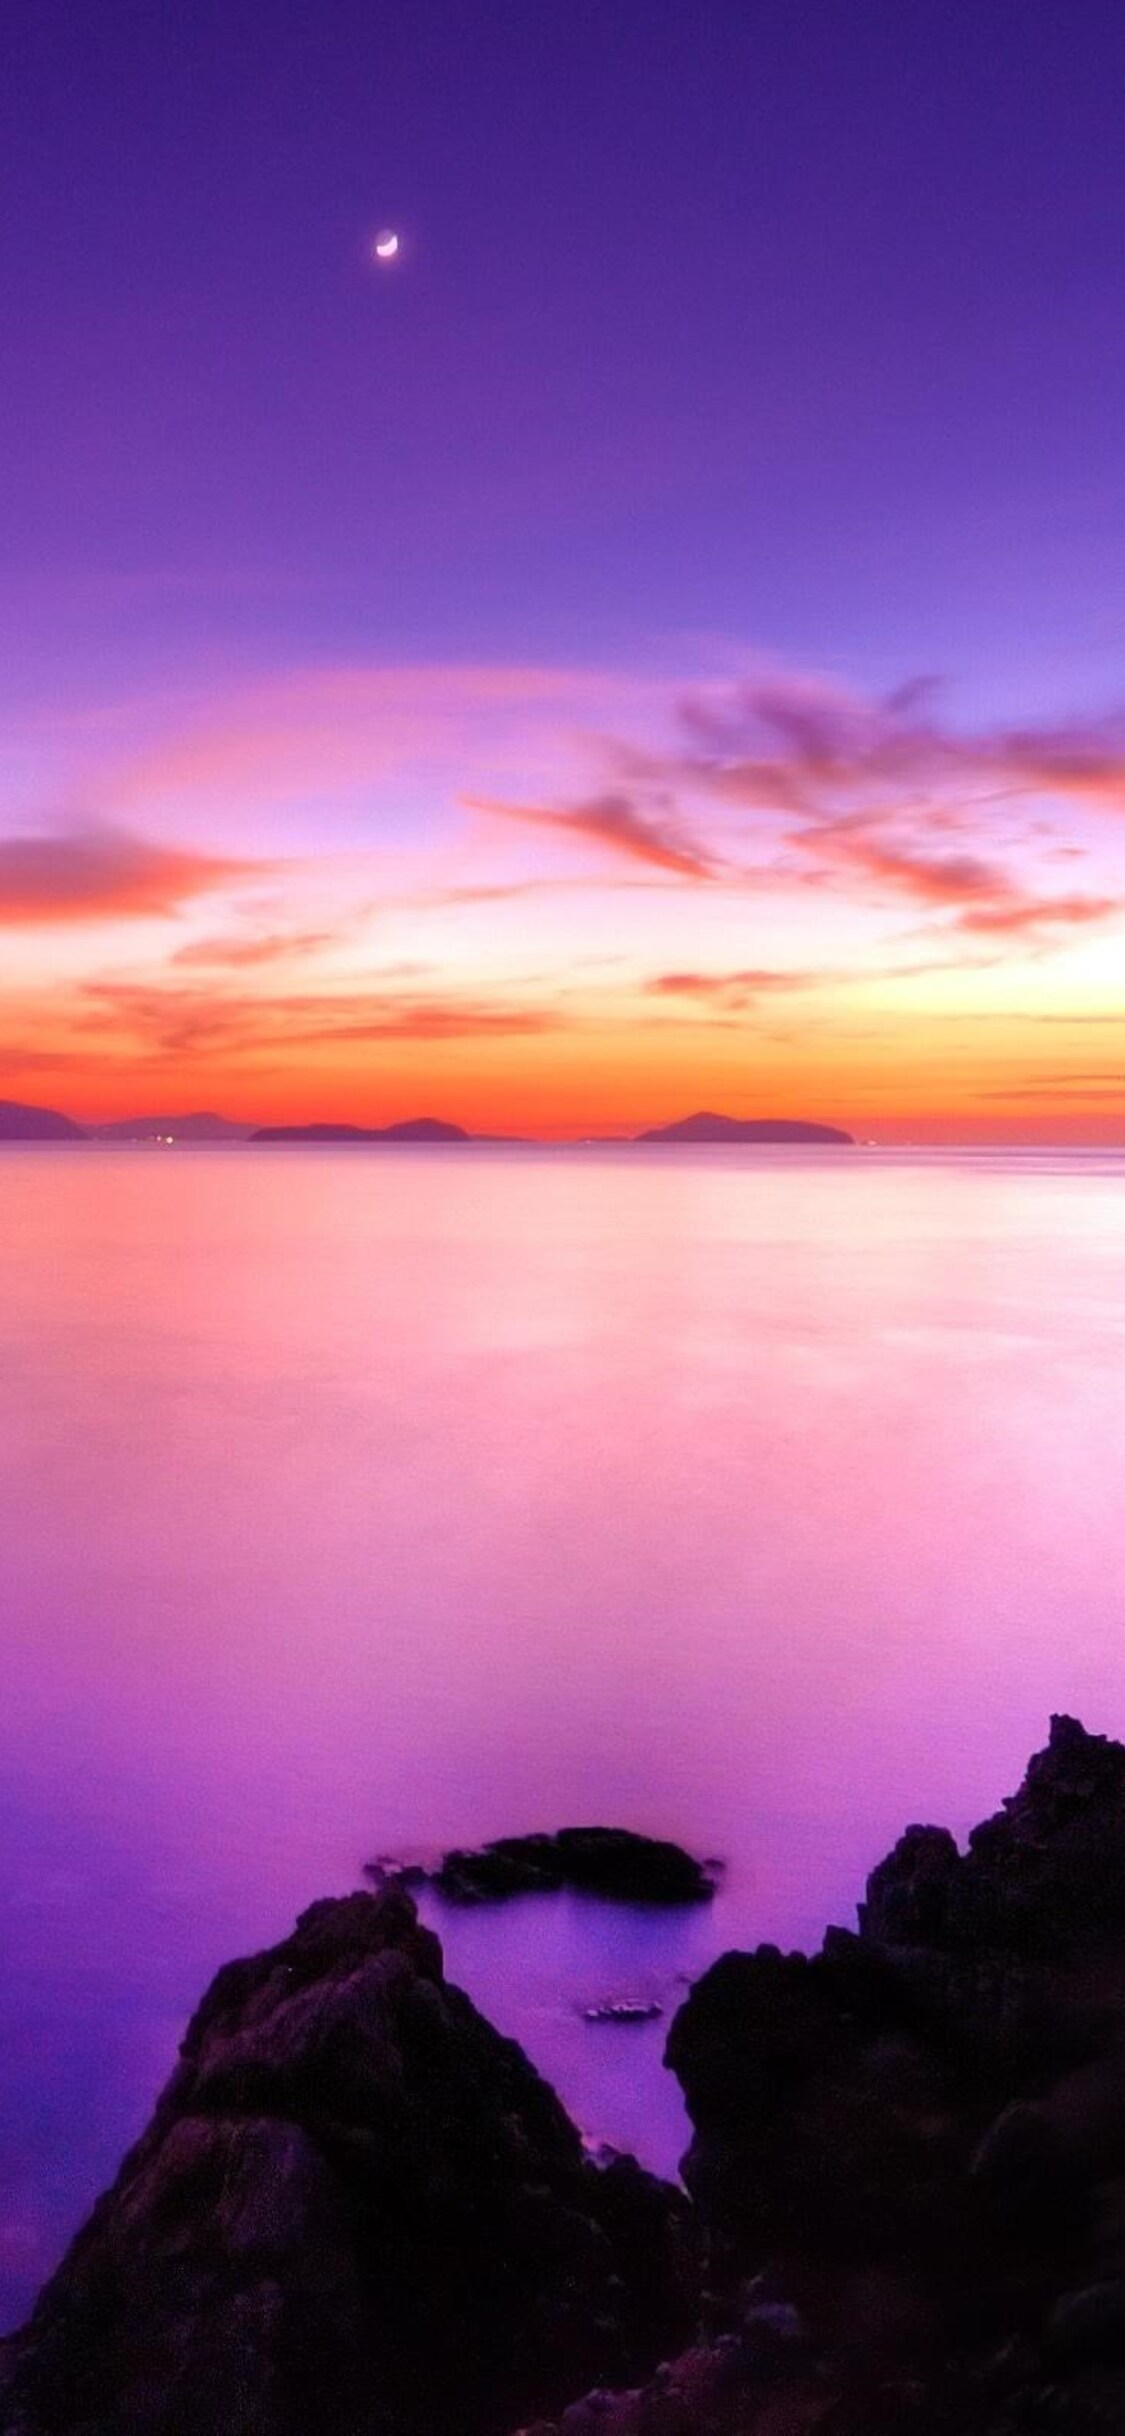 1125x2436 Pink Sunset Iphone XIphone 10 HD 4k Wallpapers Images